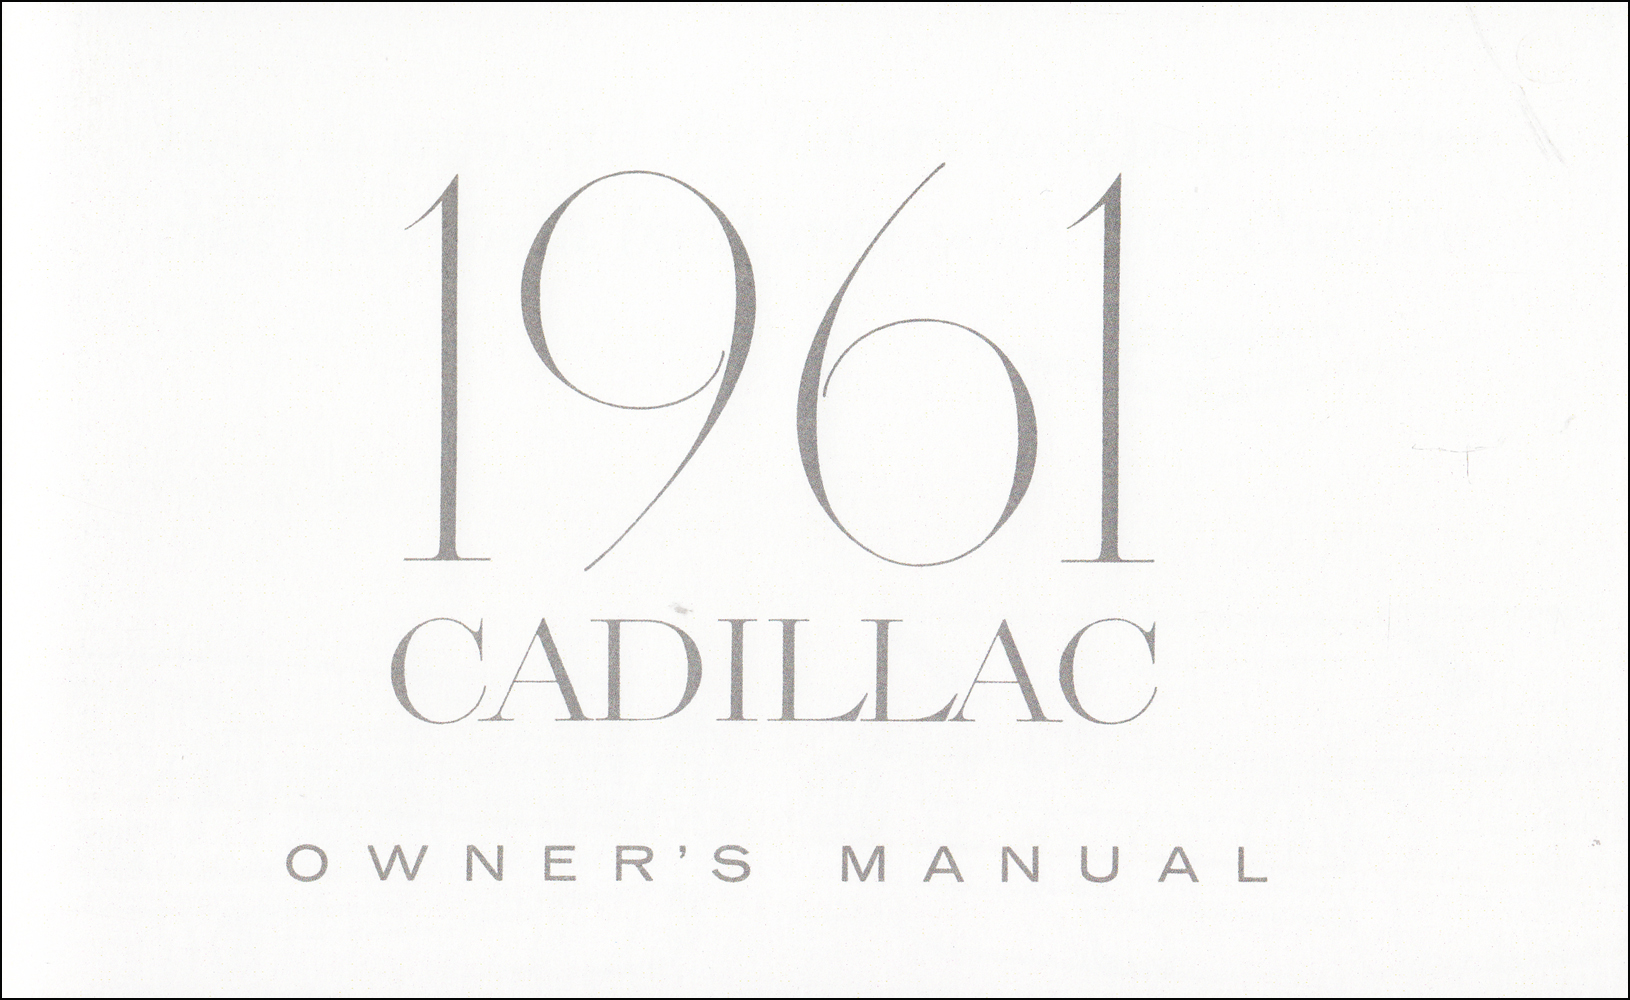 1961 Cadillac Owner's Manual Reprint